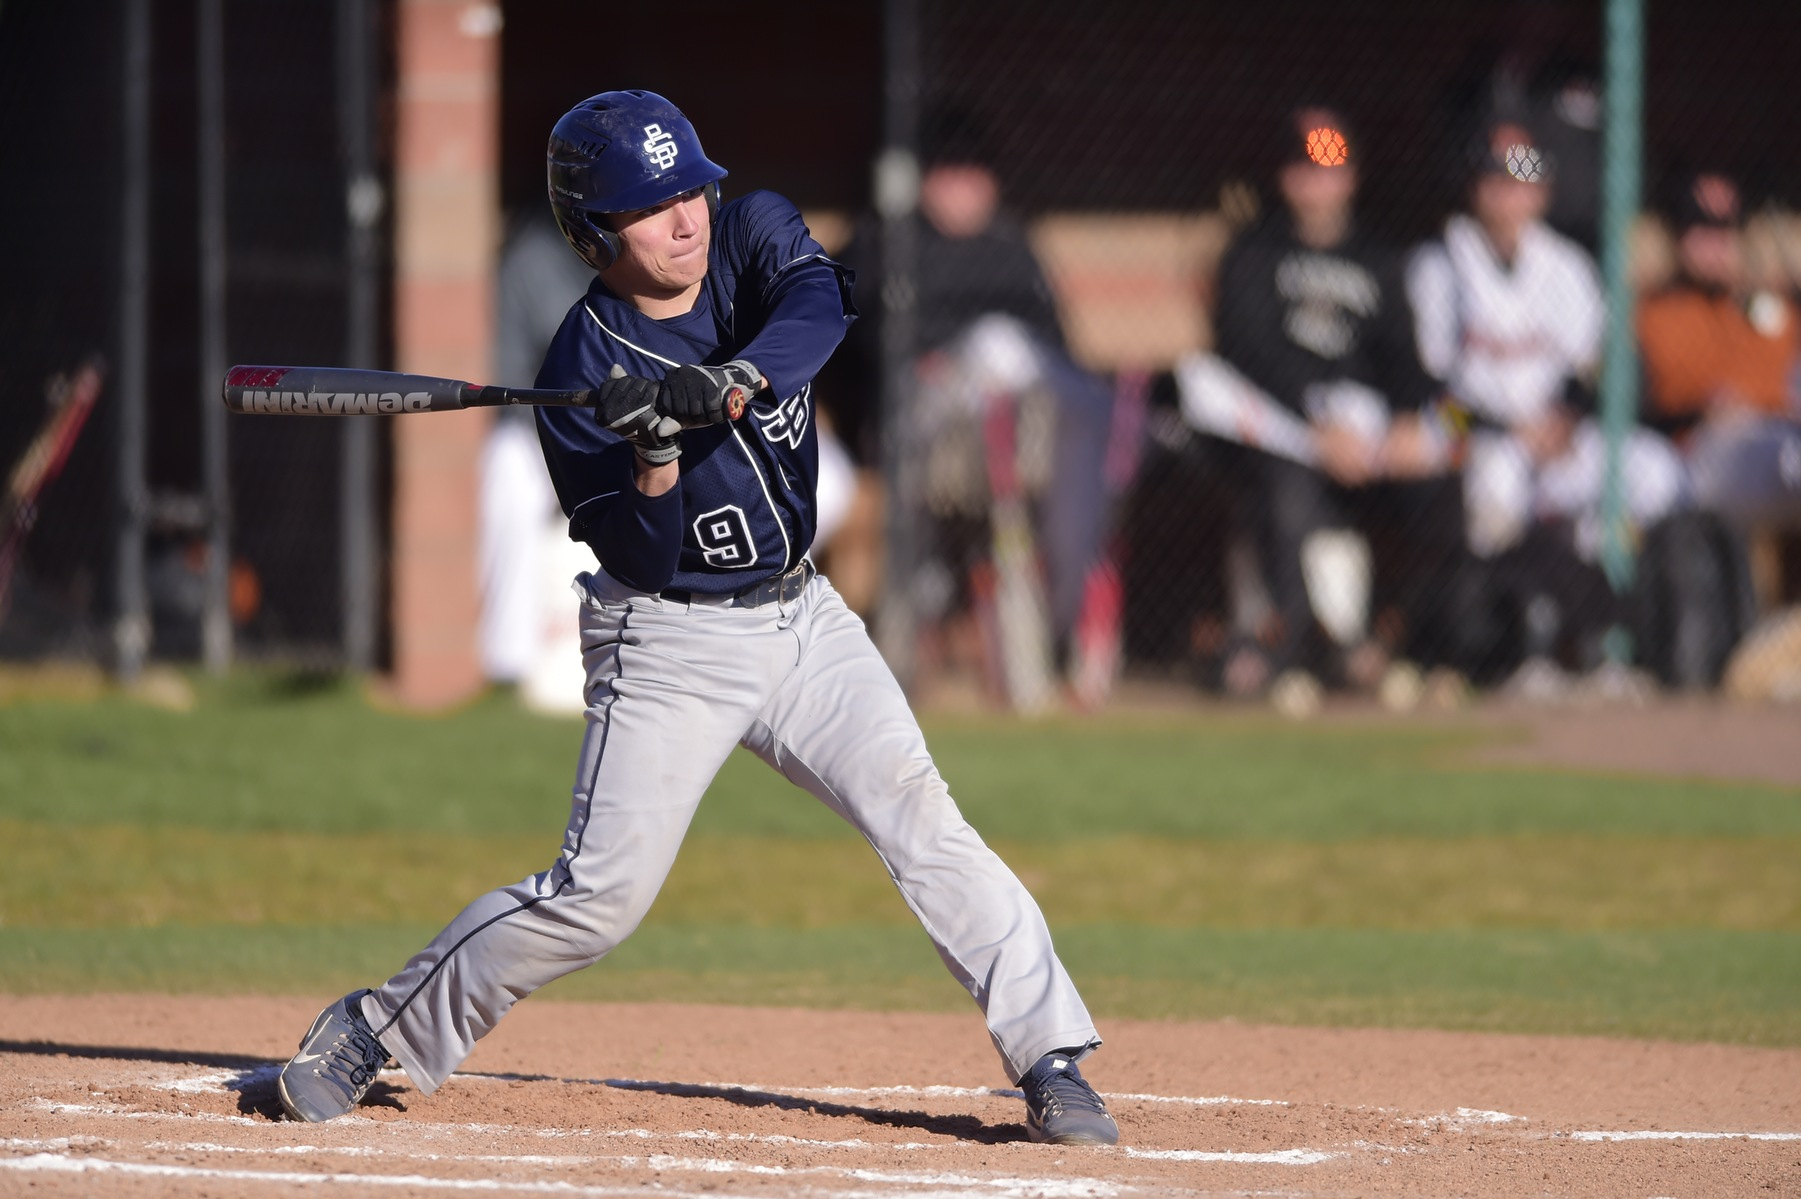 Baseball Picks Up Sweep Over D'Youville